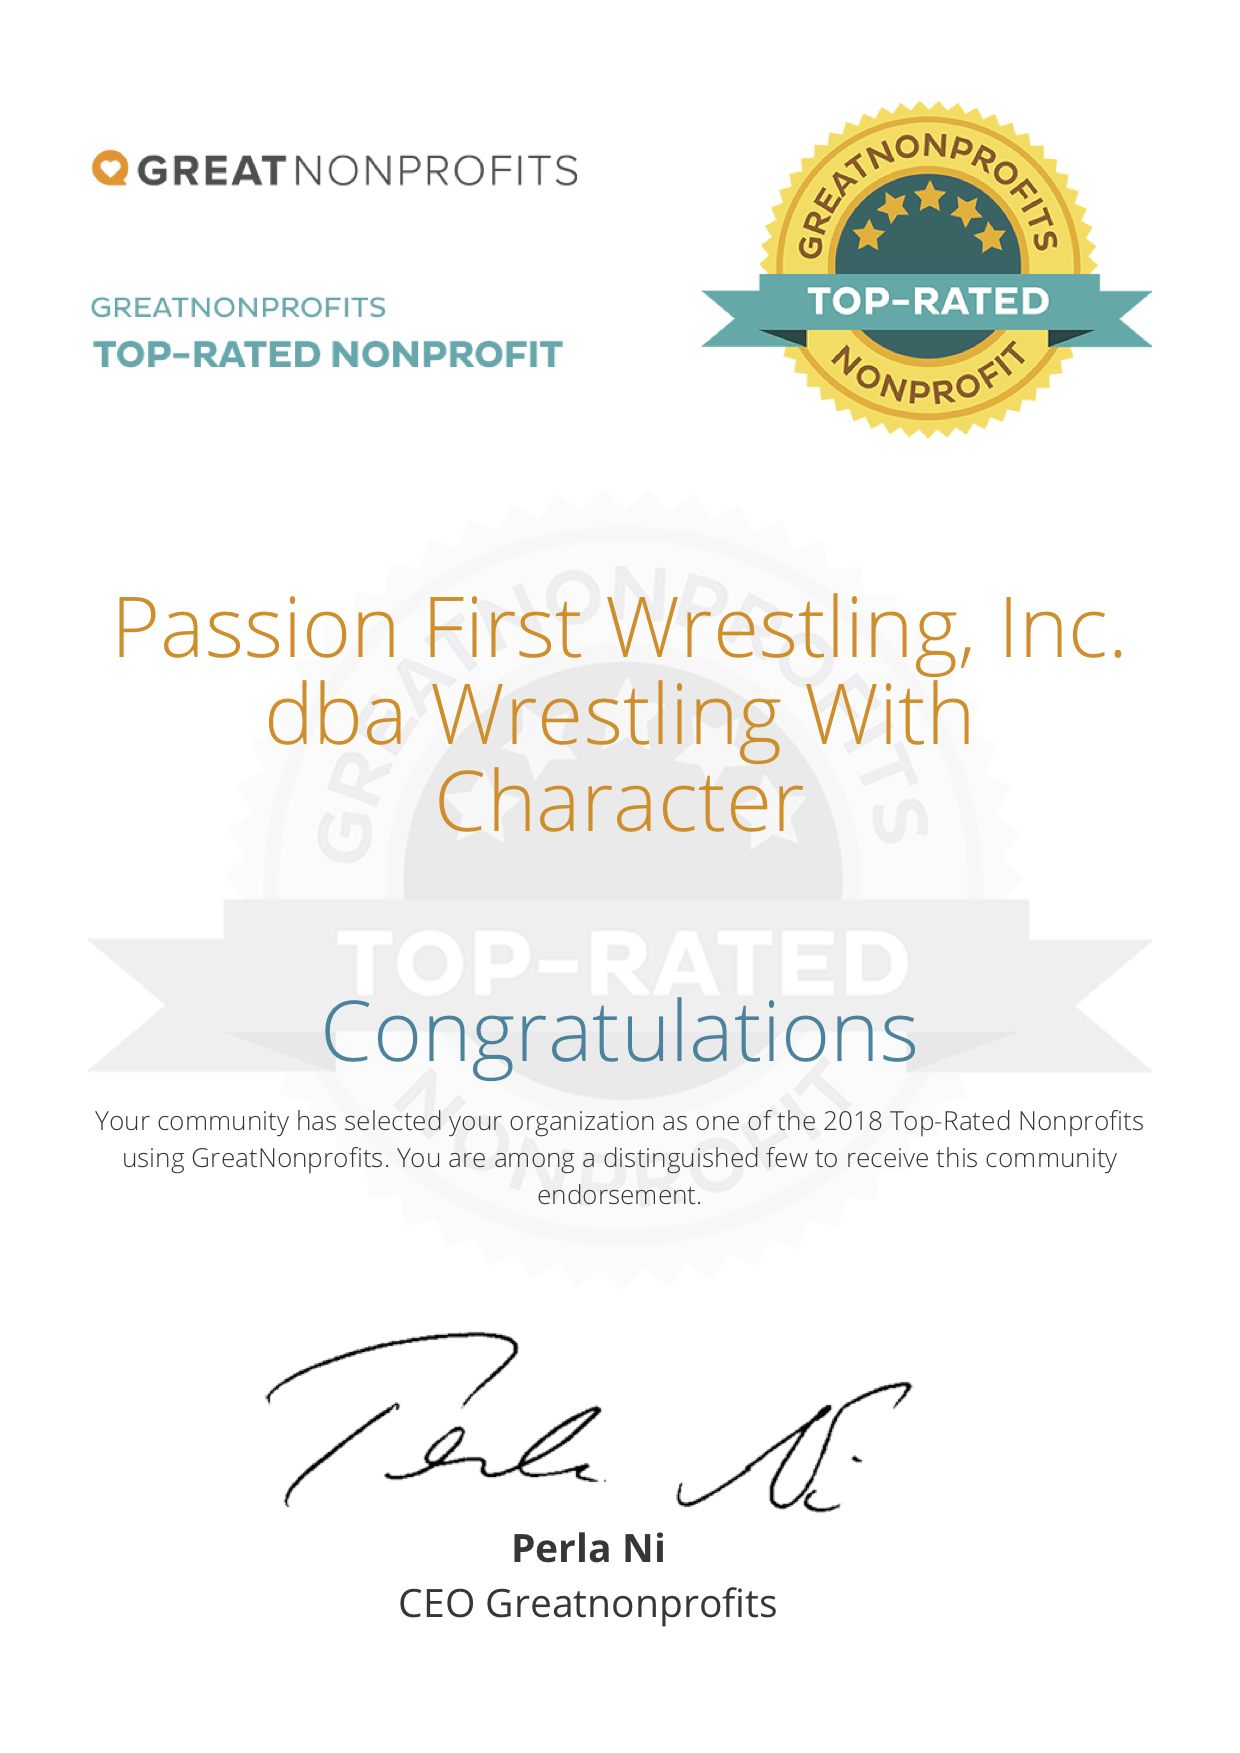 2018 great nonprofits JPG.jpg It's official. Passion First Wrestling, Inc. dba Wrestling With Character is on the 2018 Top-Rated List.